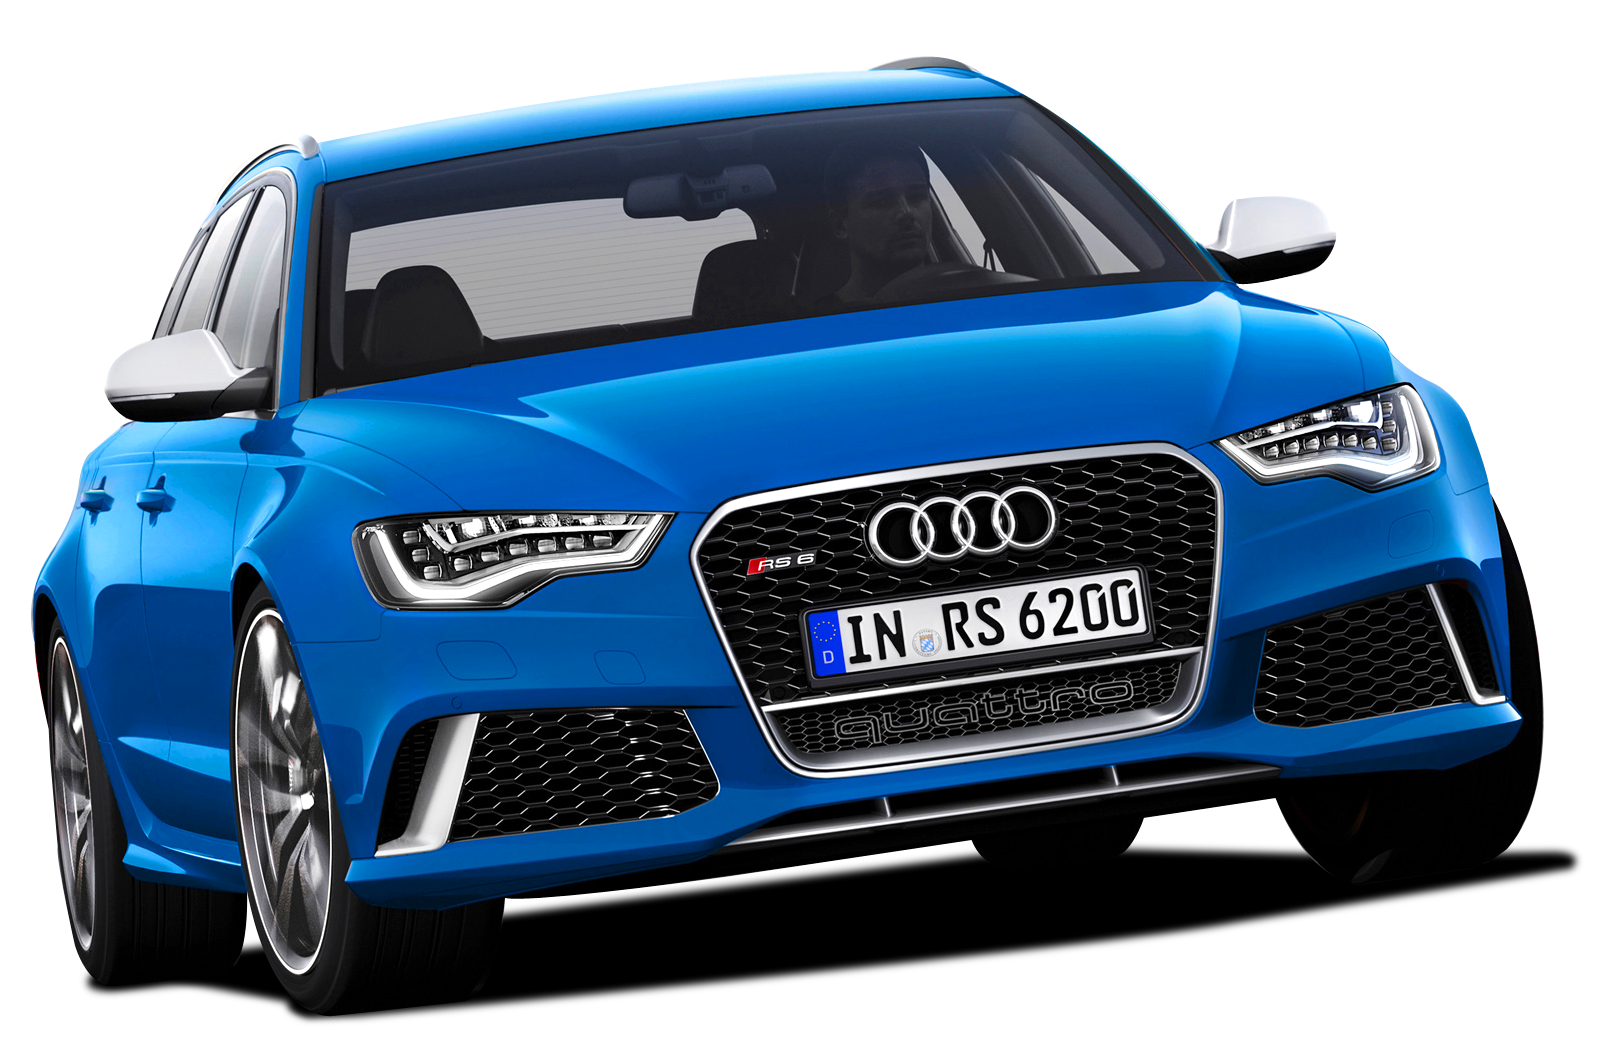 kisspng-audi-rs-6-car-bmw-m5-audi-tt-audi-rs6-5a74c0c3024248.5397460215176009630093.png